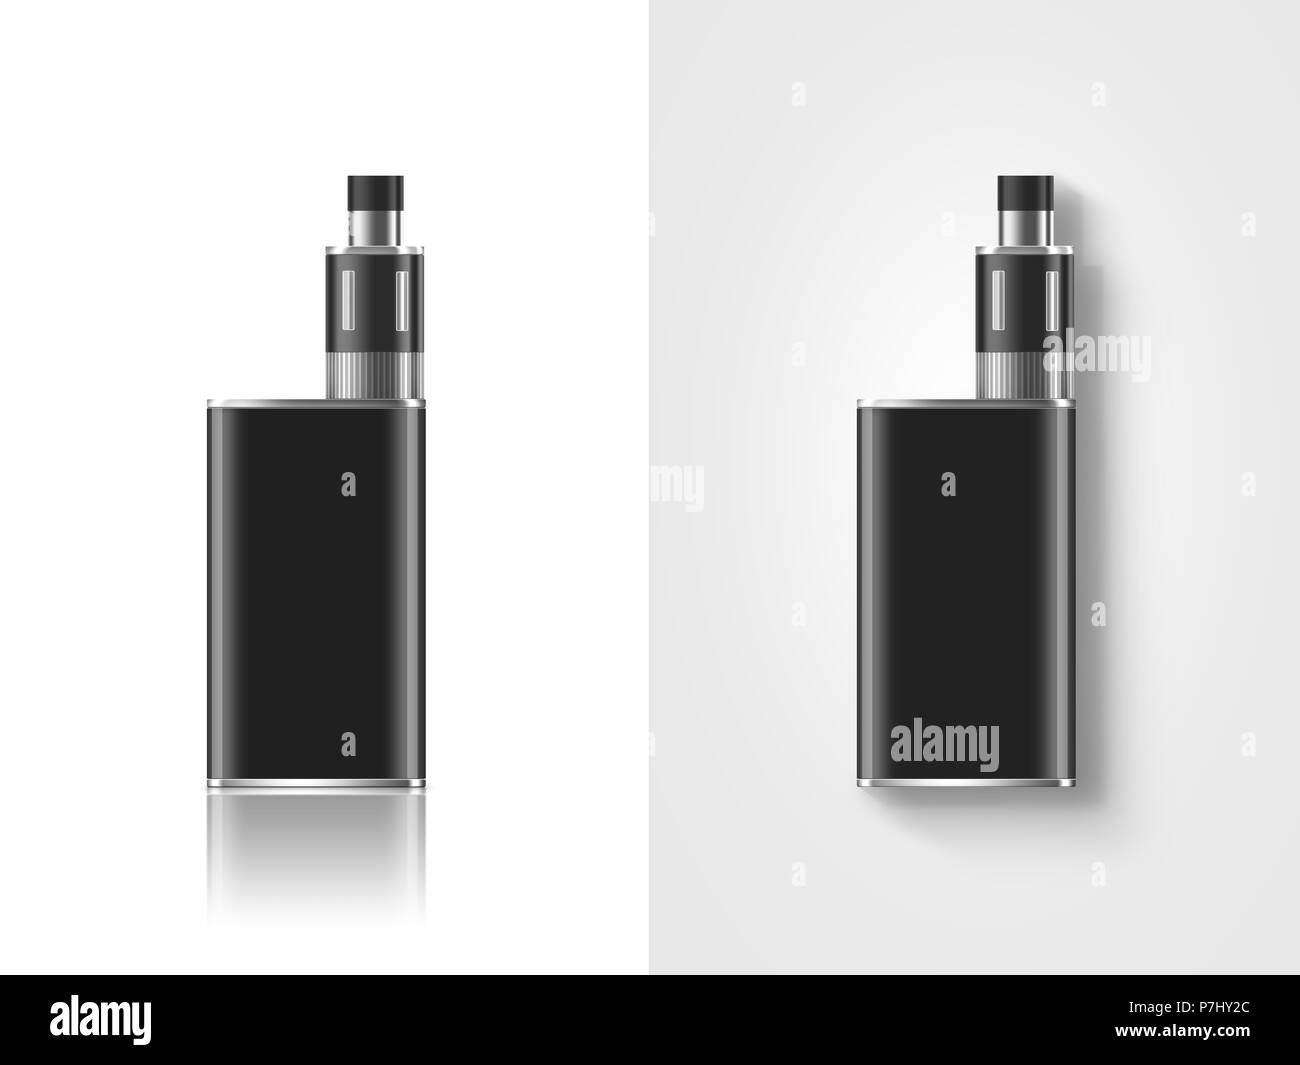 Blank black vape mod box mockup isolated, clipping path, stand and lies, 3d illustration. Clear smoking vapor mock up template. Modbox vaporizer devic - Stock Image